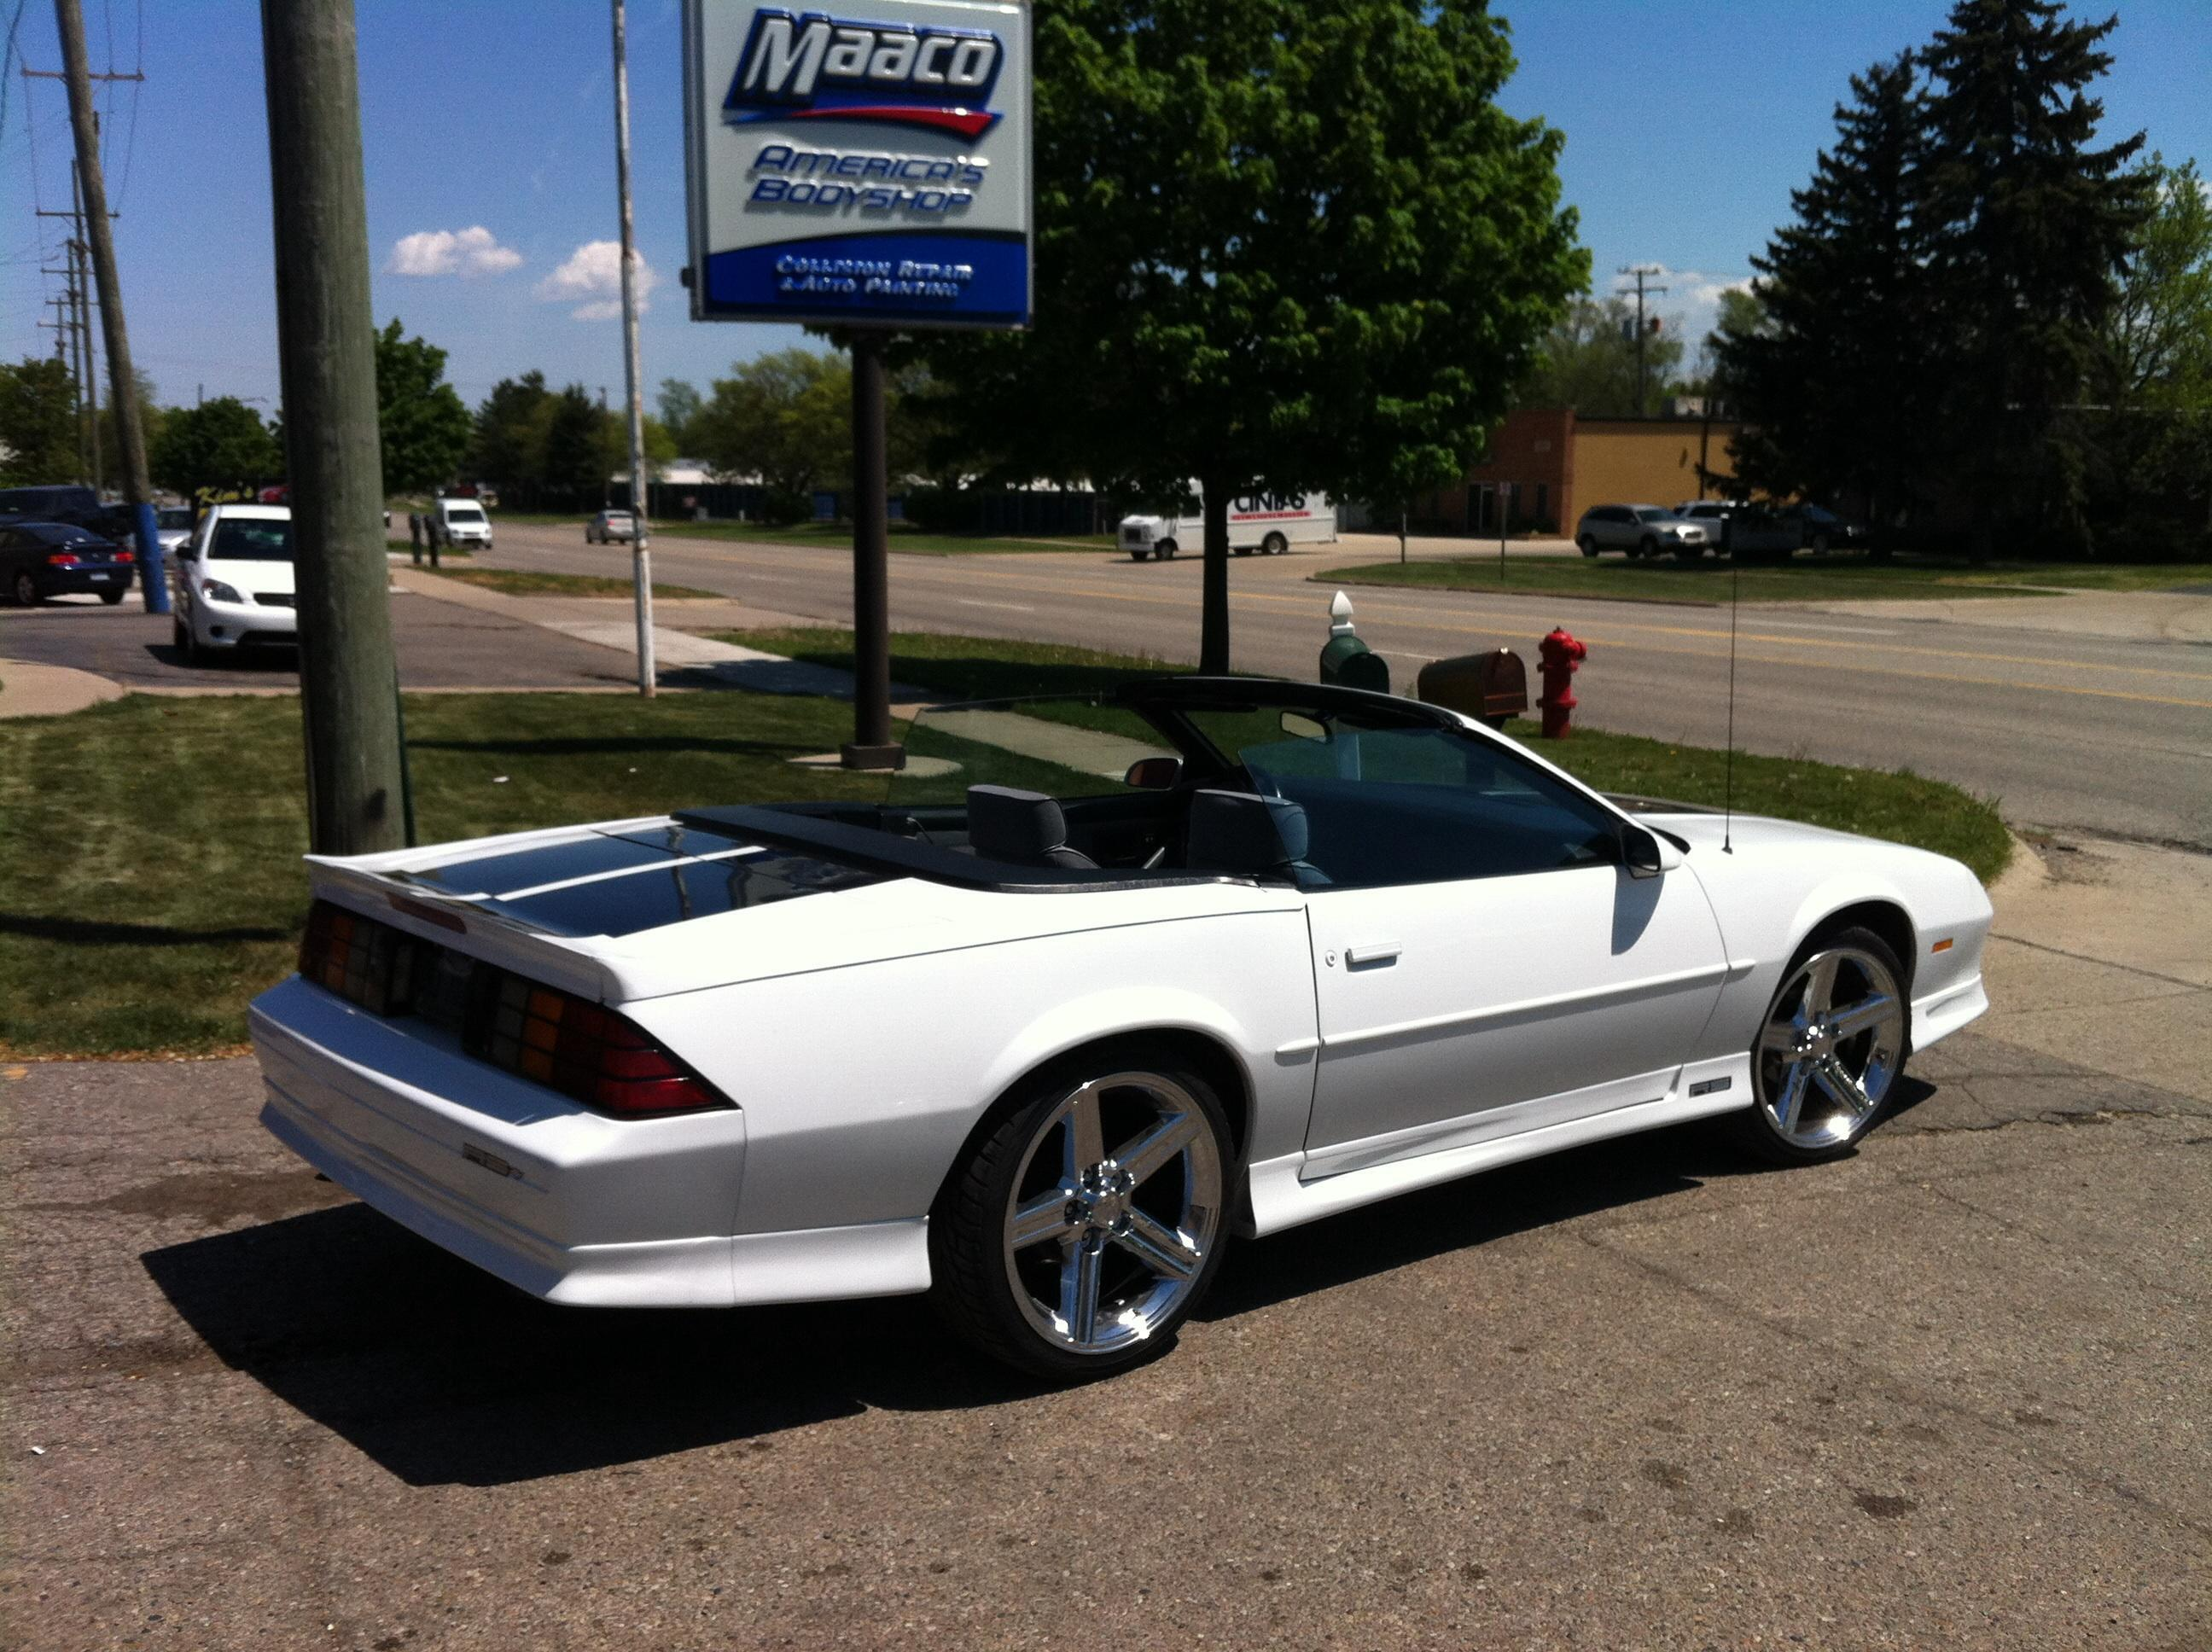 Maaco collision repair auto painting in farmington mi for Maaco paint and body